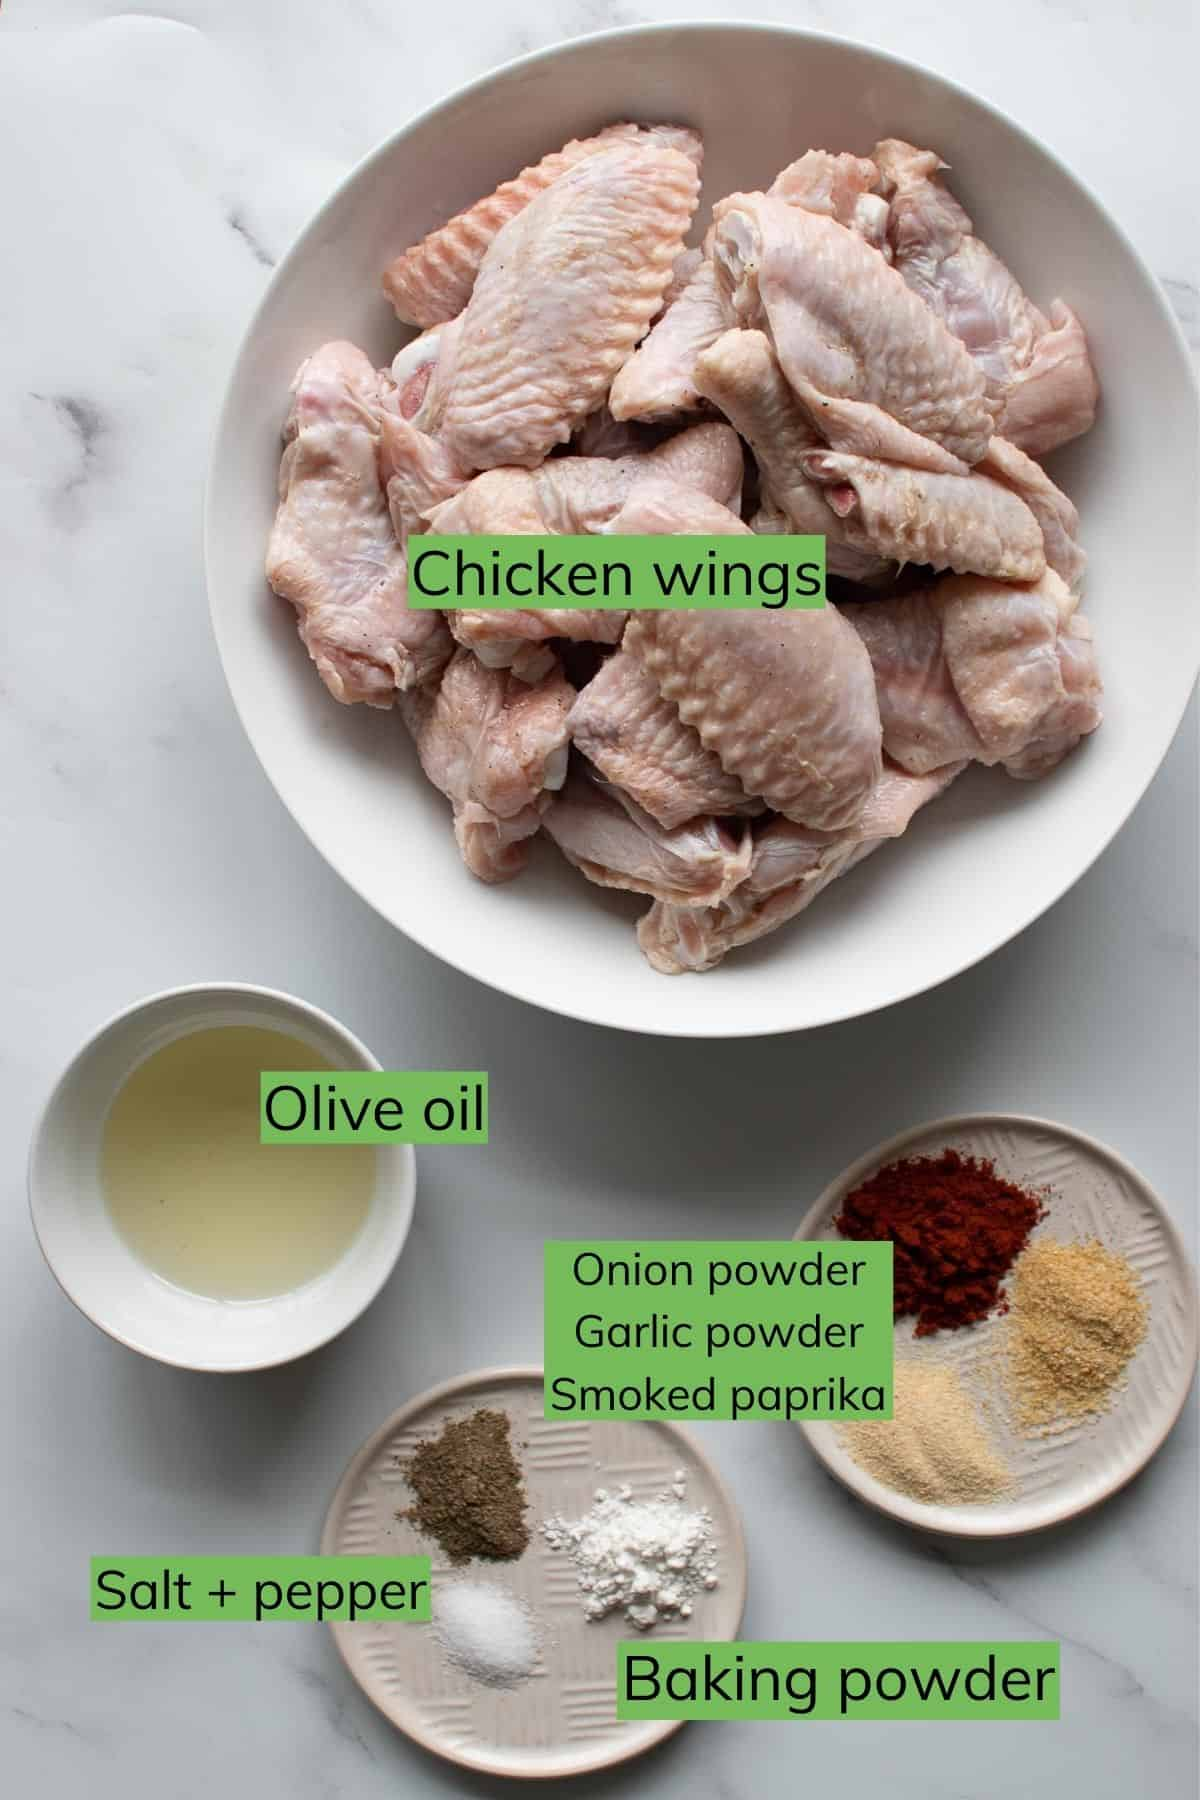 The ingredients you need to make BBQ chicken wings.